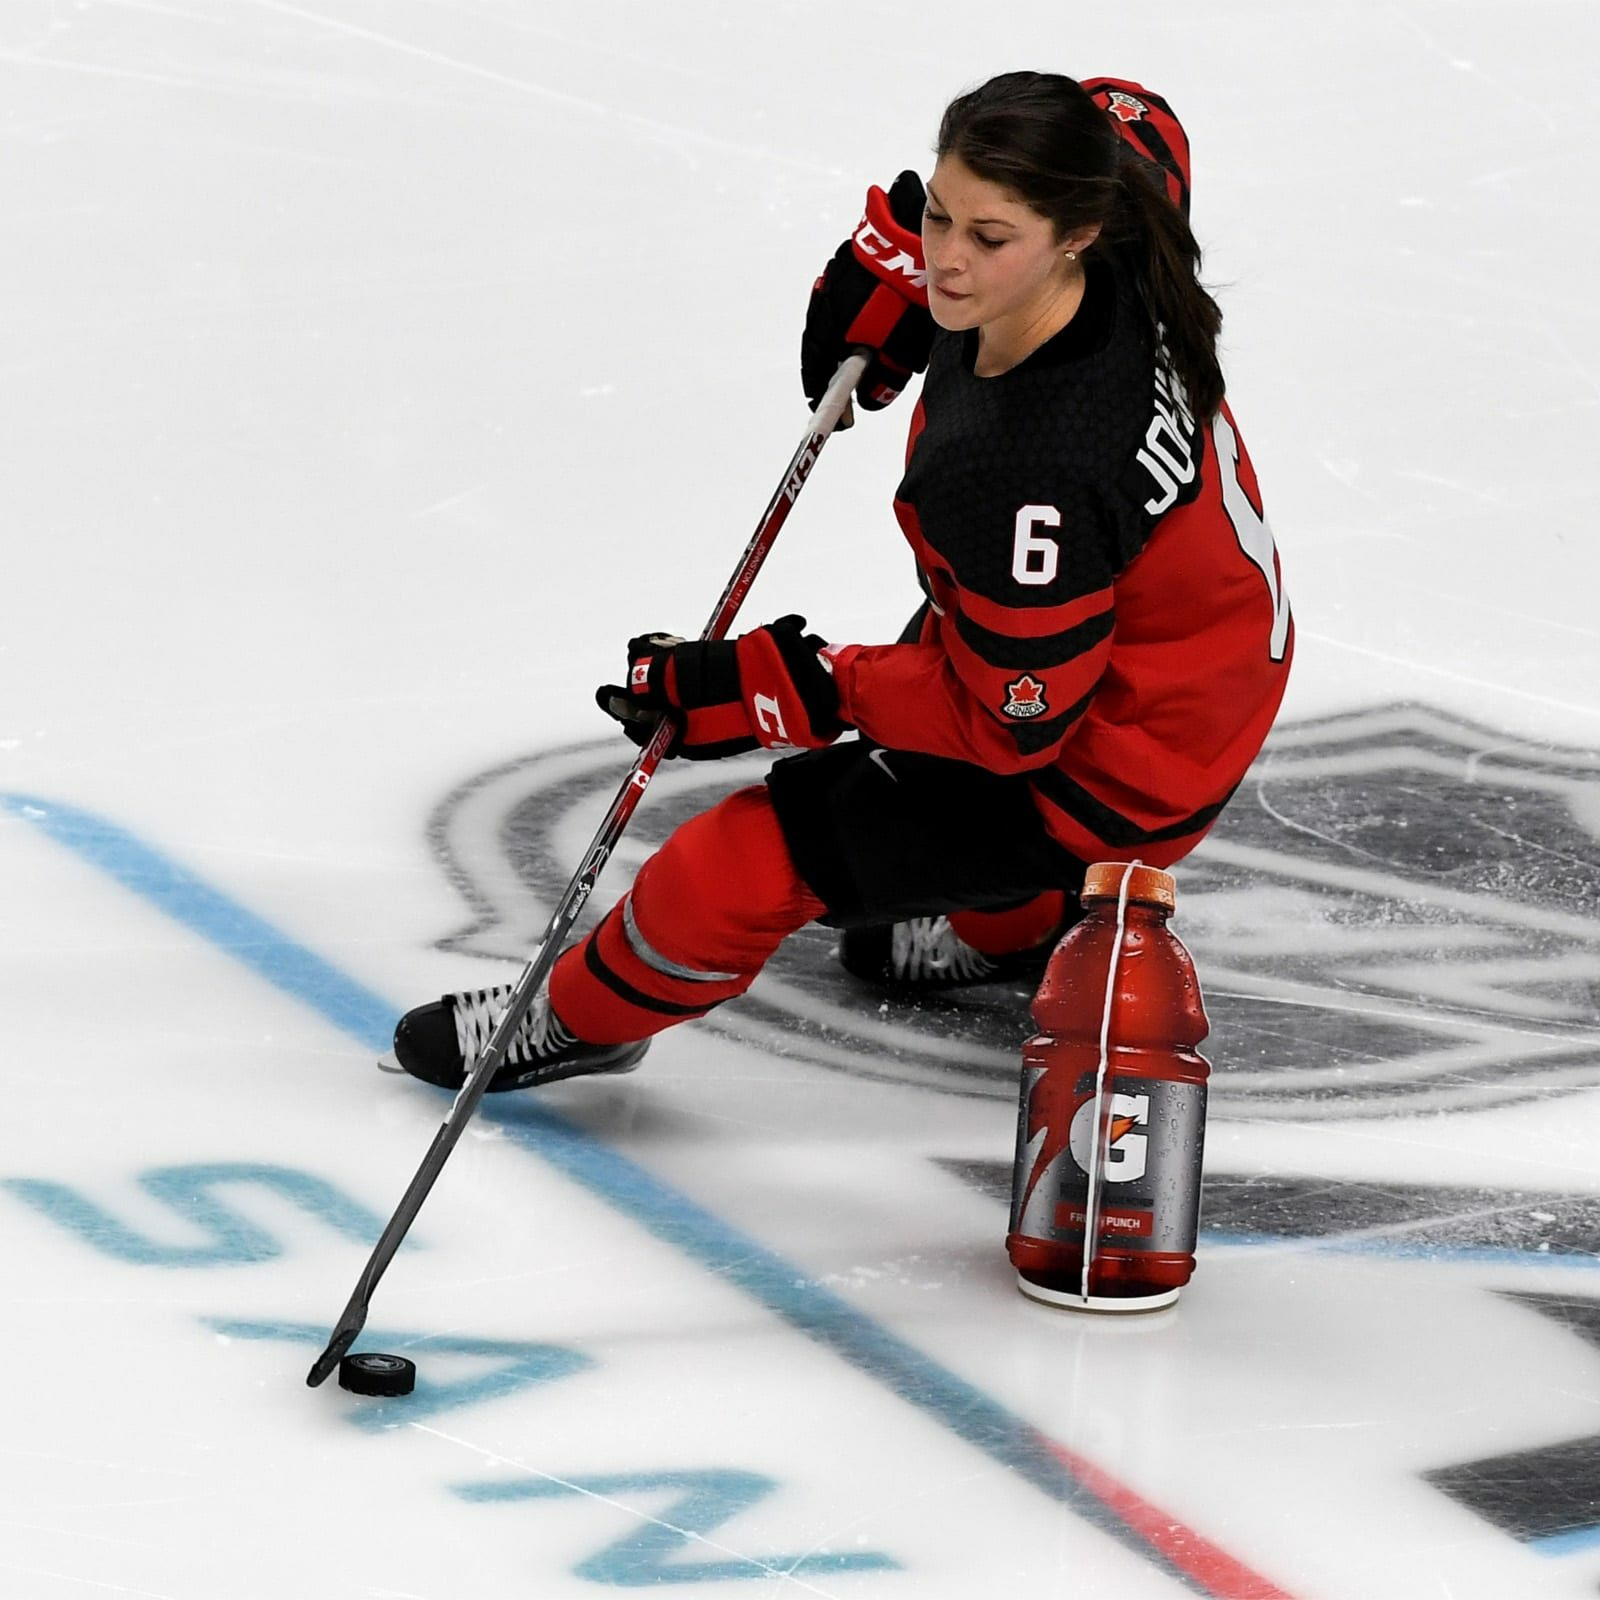 SAN JOSE, CA - JANUARY 25:  Rebecca Johnston, of the Canadian women's hockey team competes in the Gatorade NHL Puck Control during the 2019 SAP NHL All-Star Skills at SAP Center on January 25, 2019 in San Jose, California.  (Photo by Thearon W. Henderson/Getty Images)